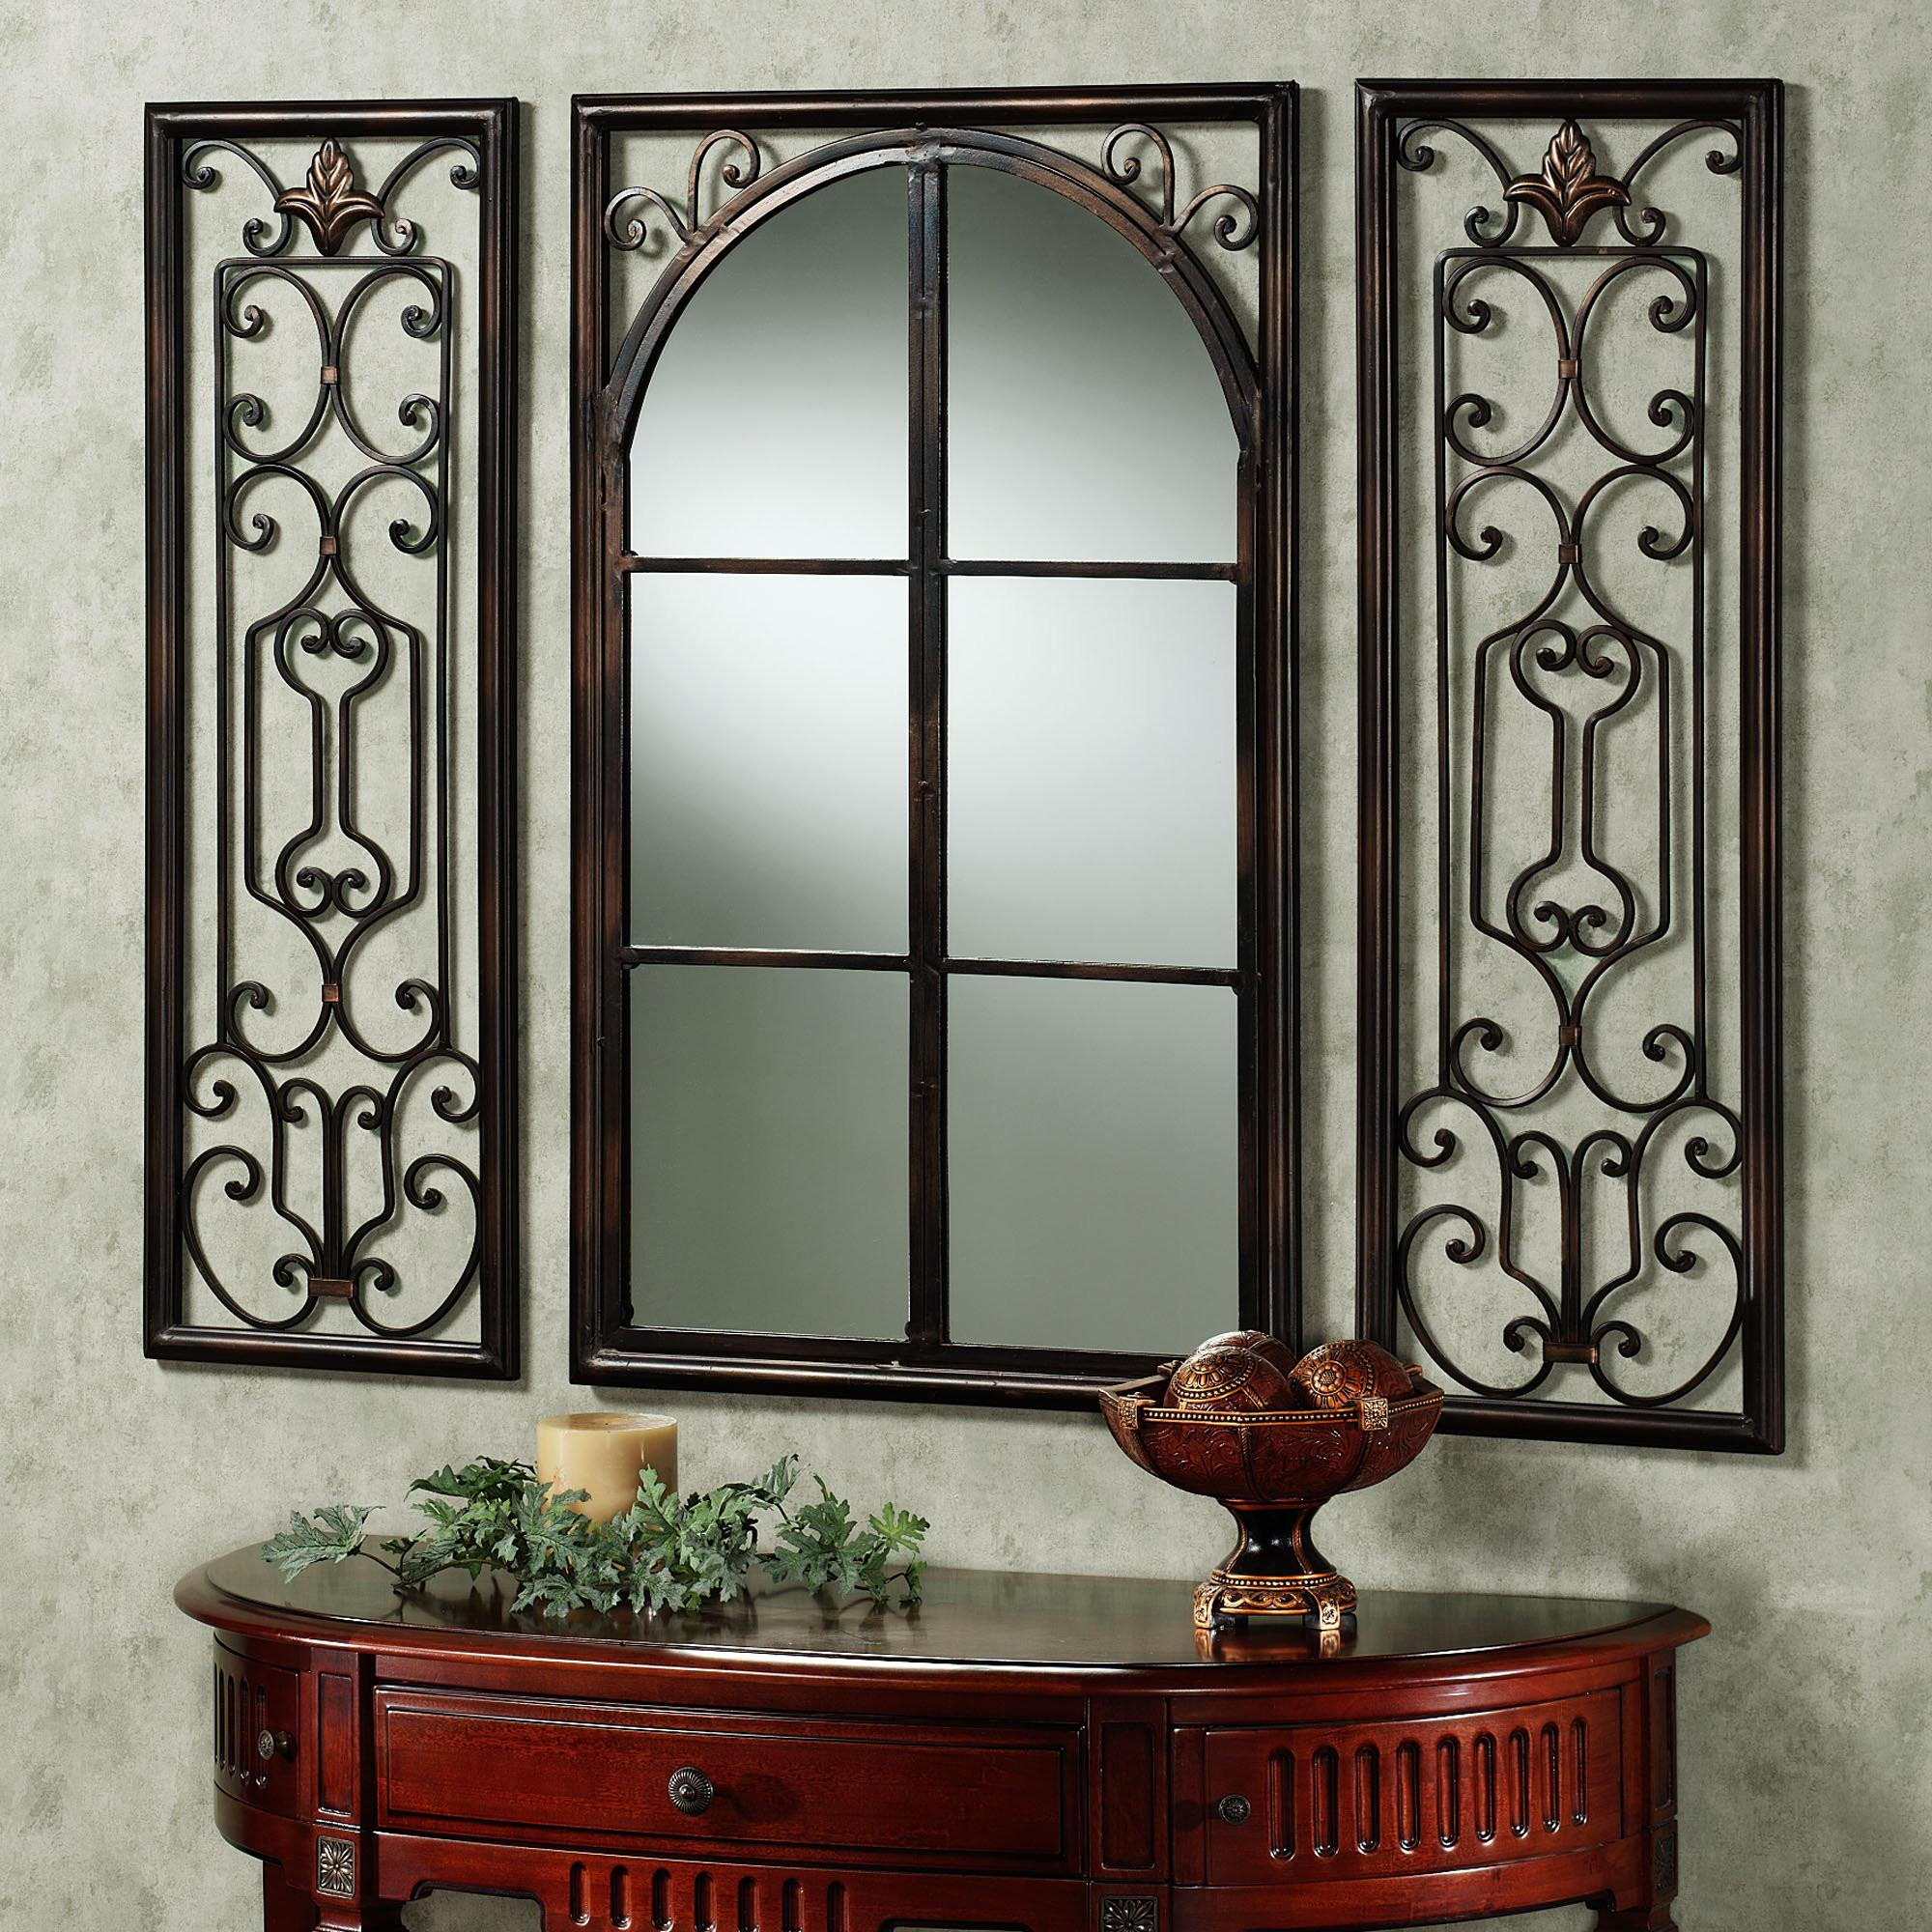 Sophisticated Iron Graphic Wall Mirrors Frames